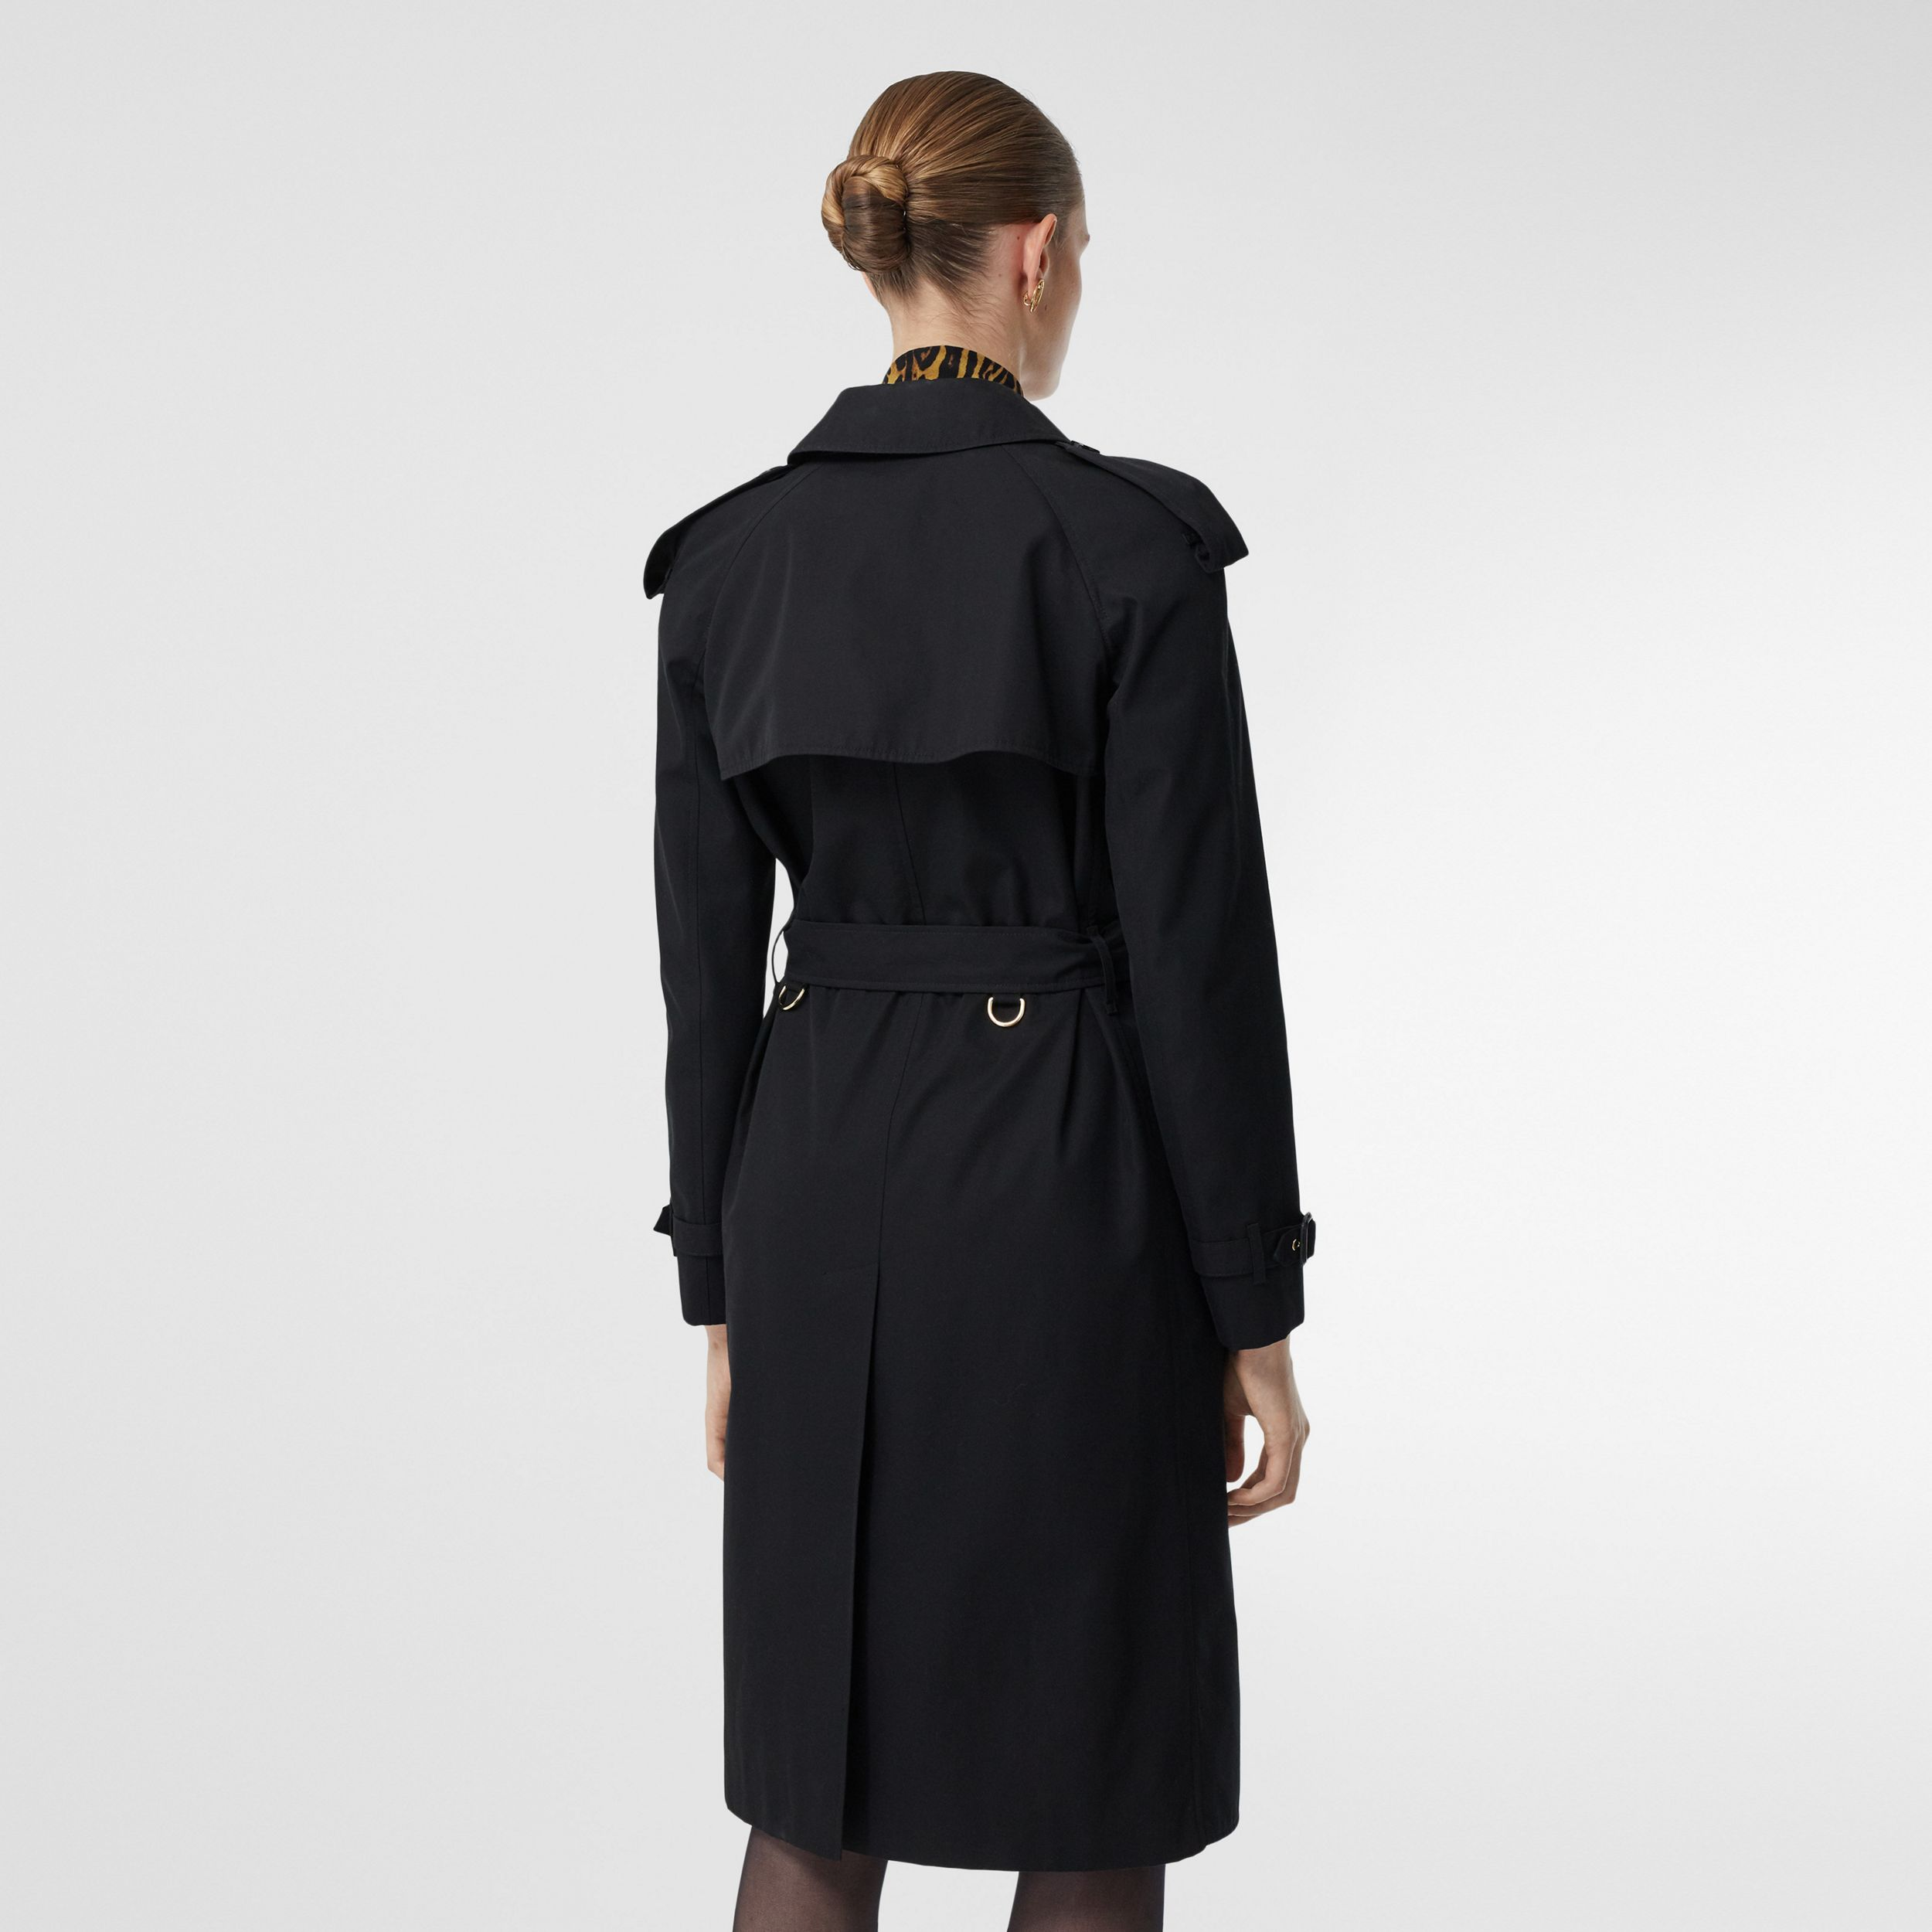 Leopard Print-lined Cotton Gabardine Trench Coat in Black - Women | Burberry - 3